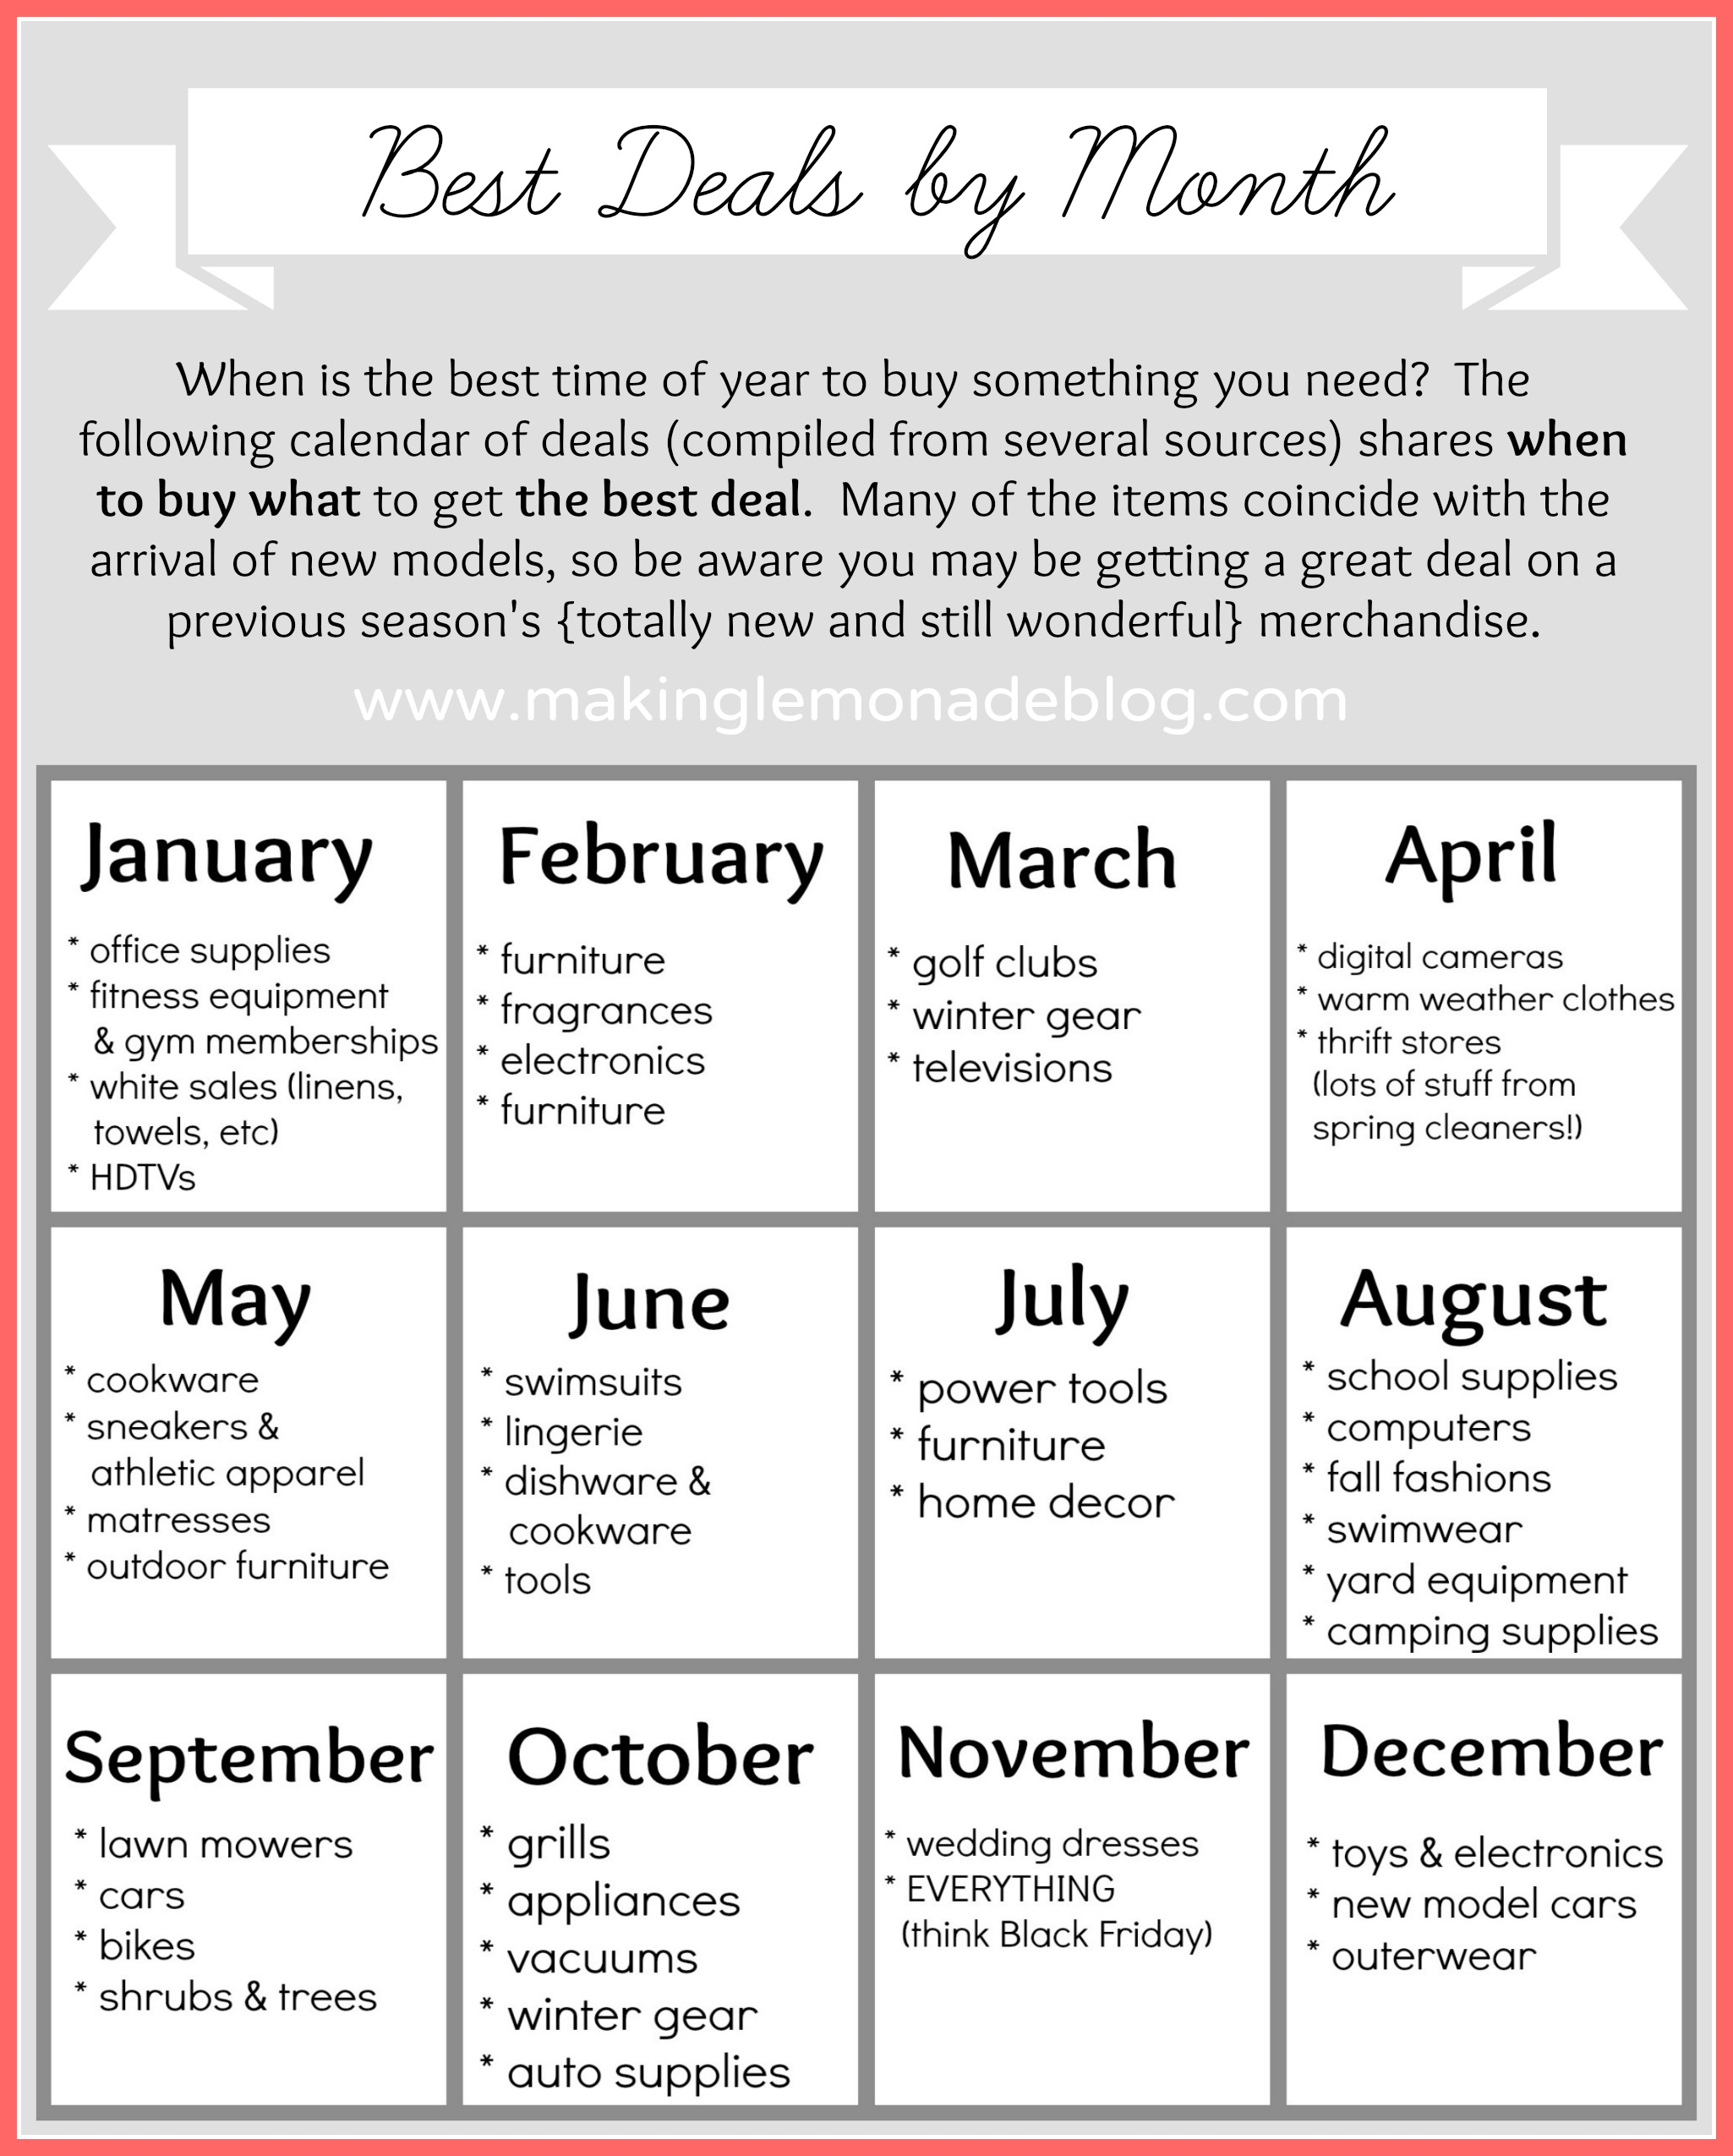 Free Printable: Best Deals By Month Calendar